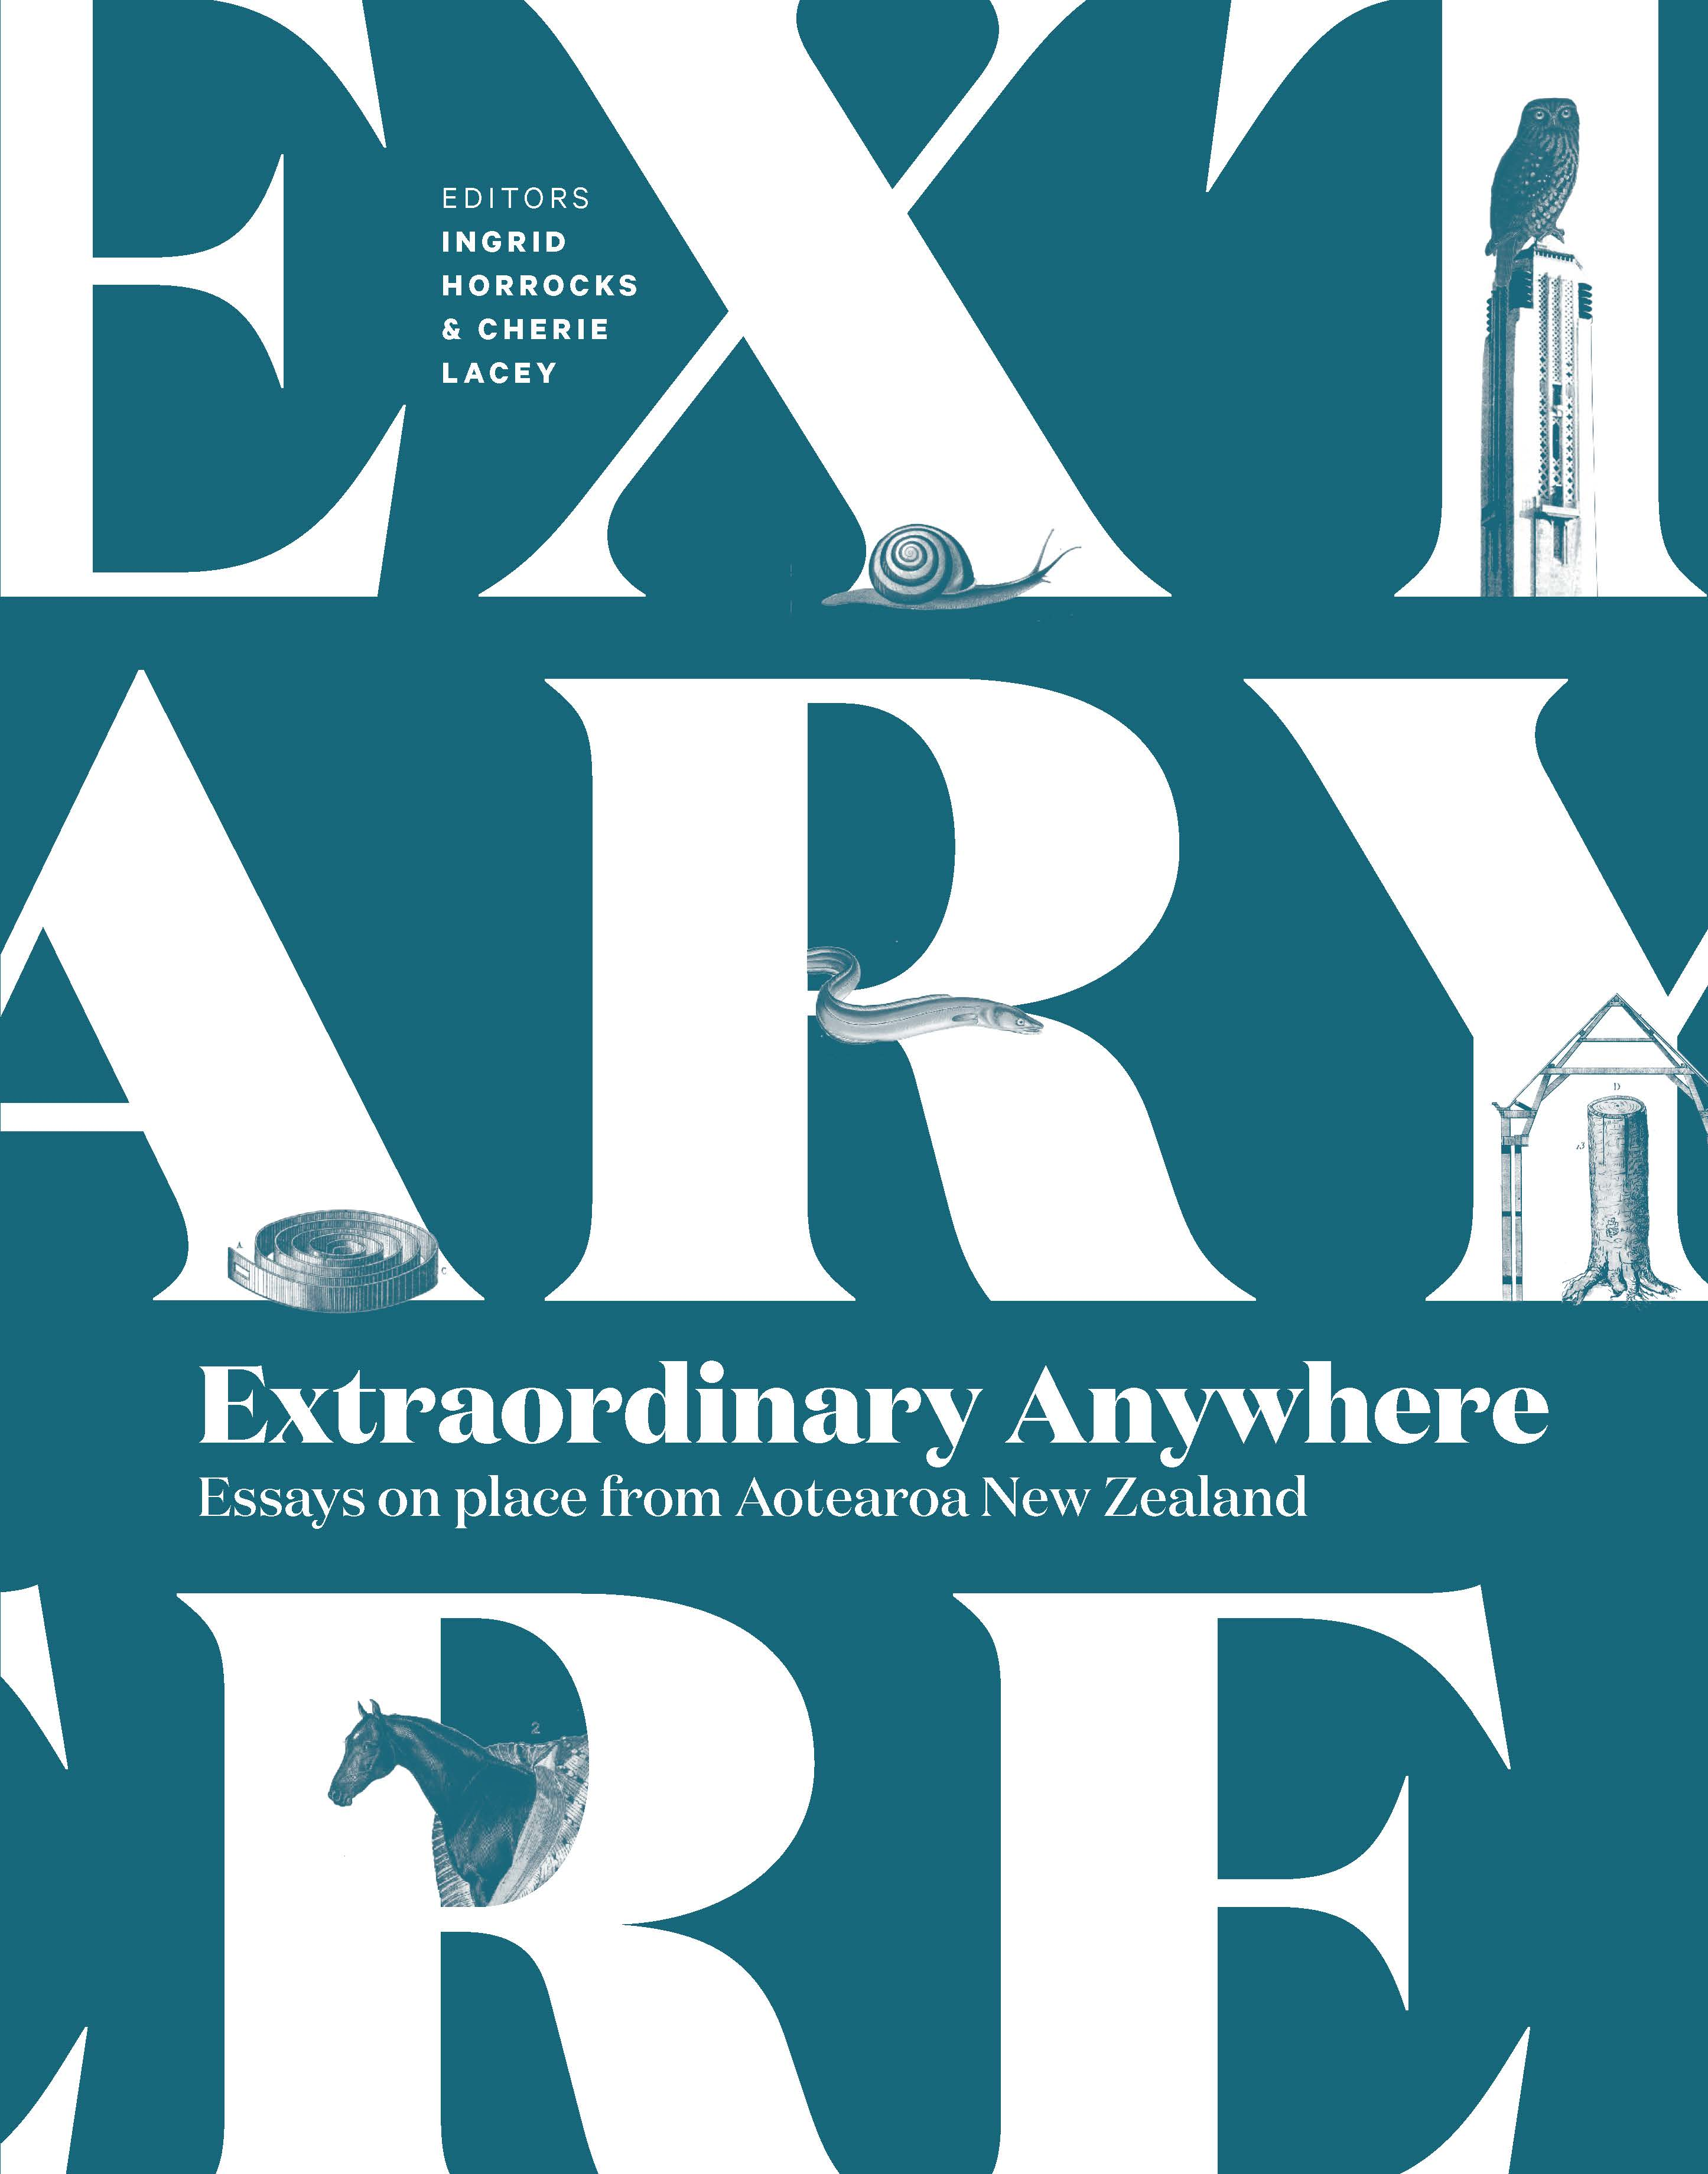 Book Cover Design New Zealand : Extraordinary anywhere essays on place from aotearoa new